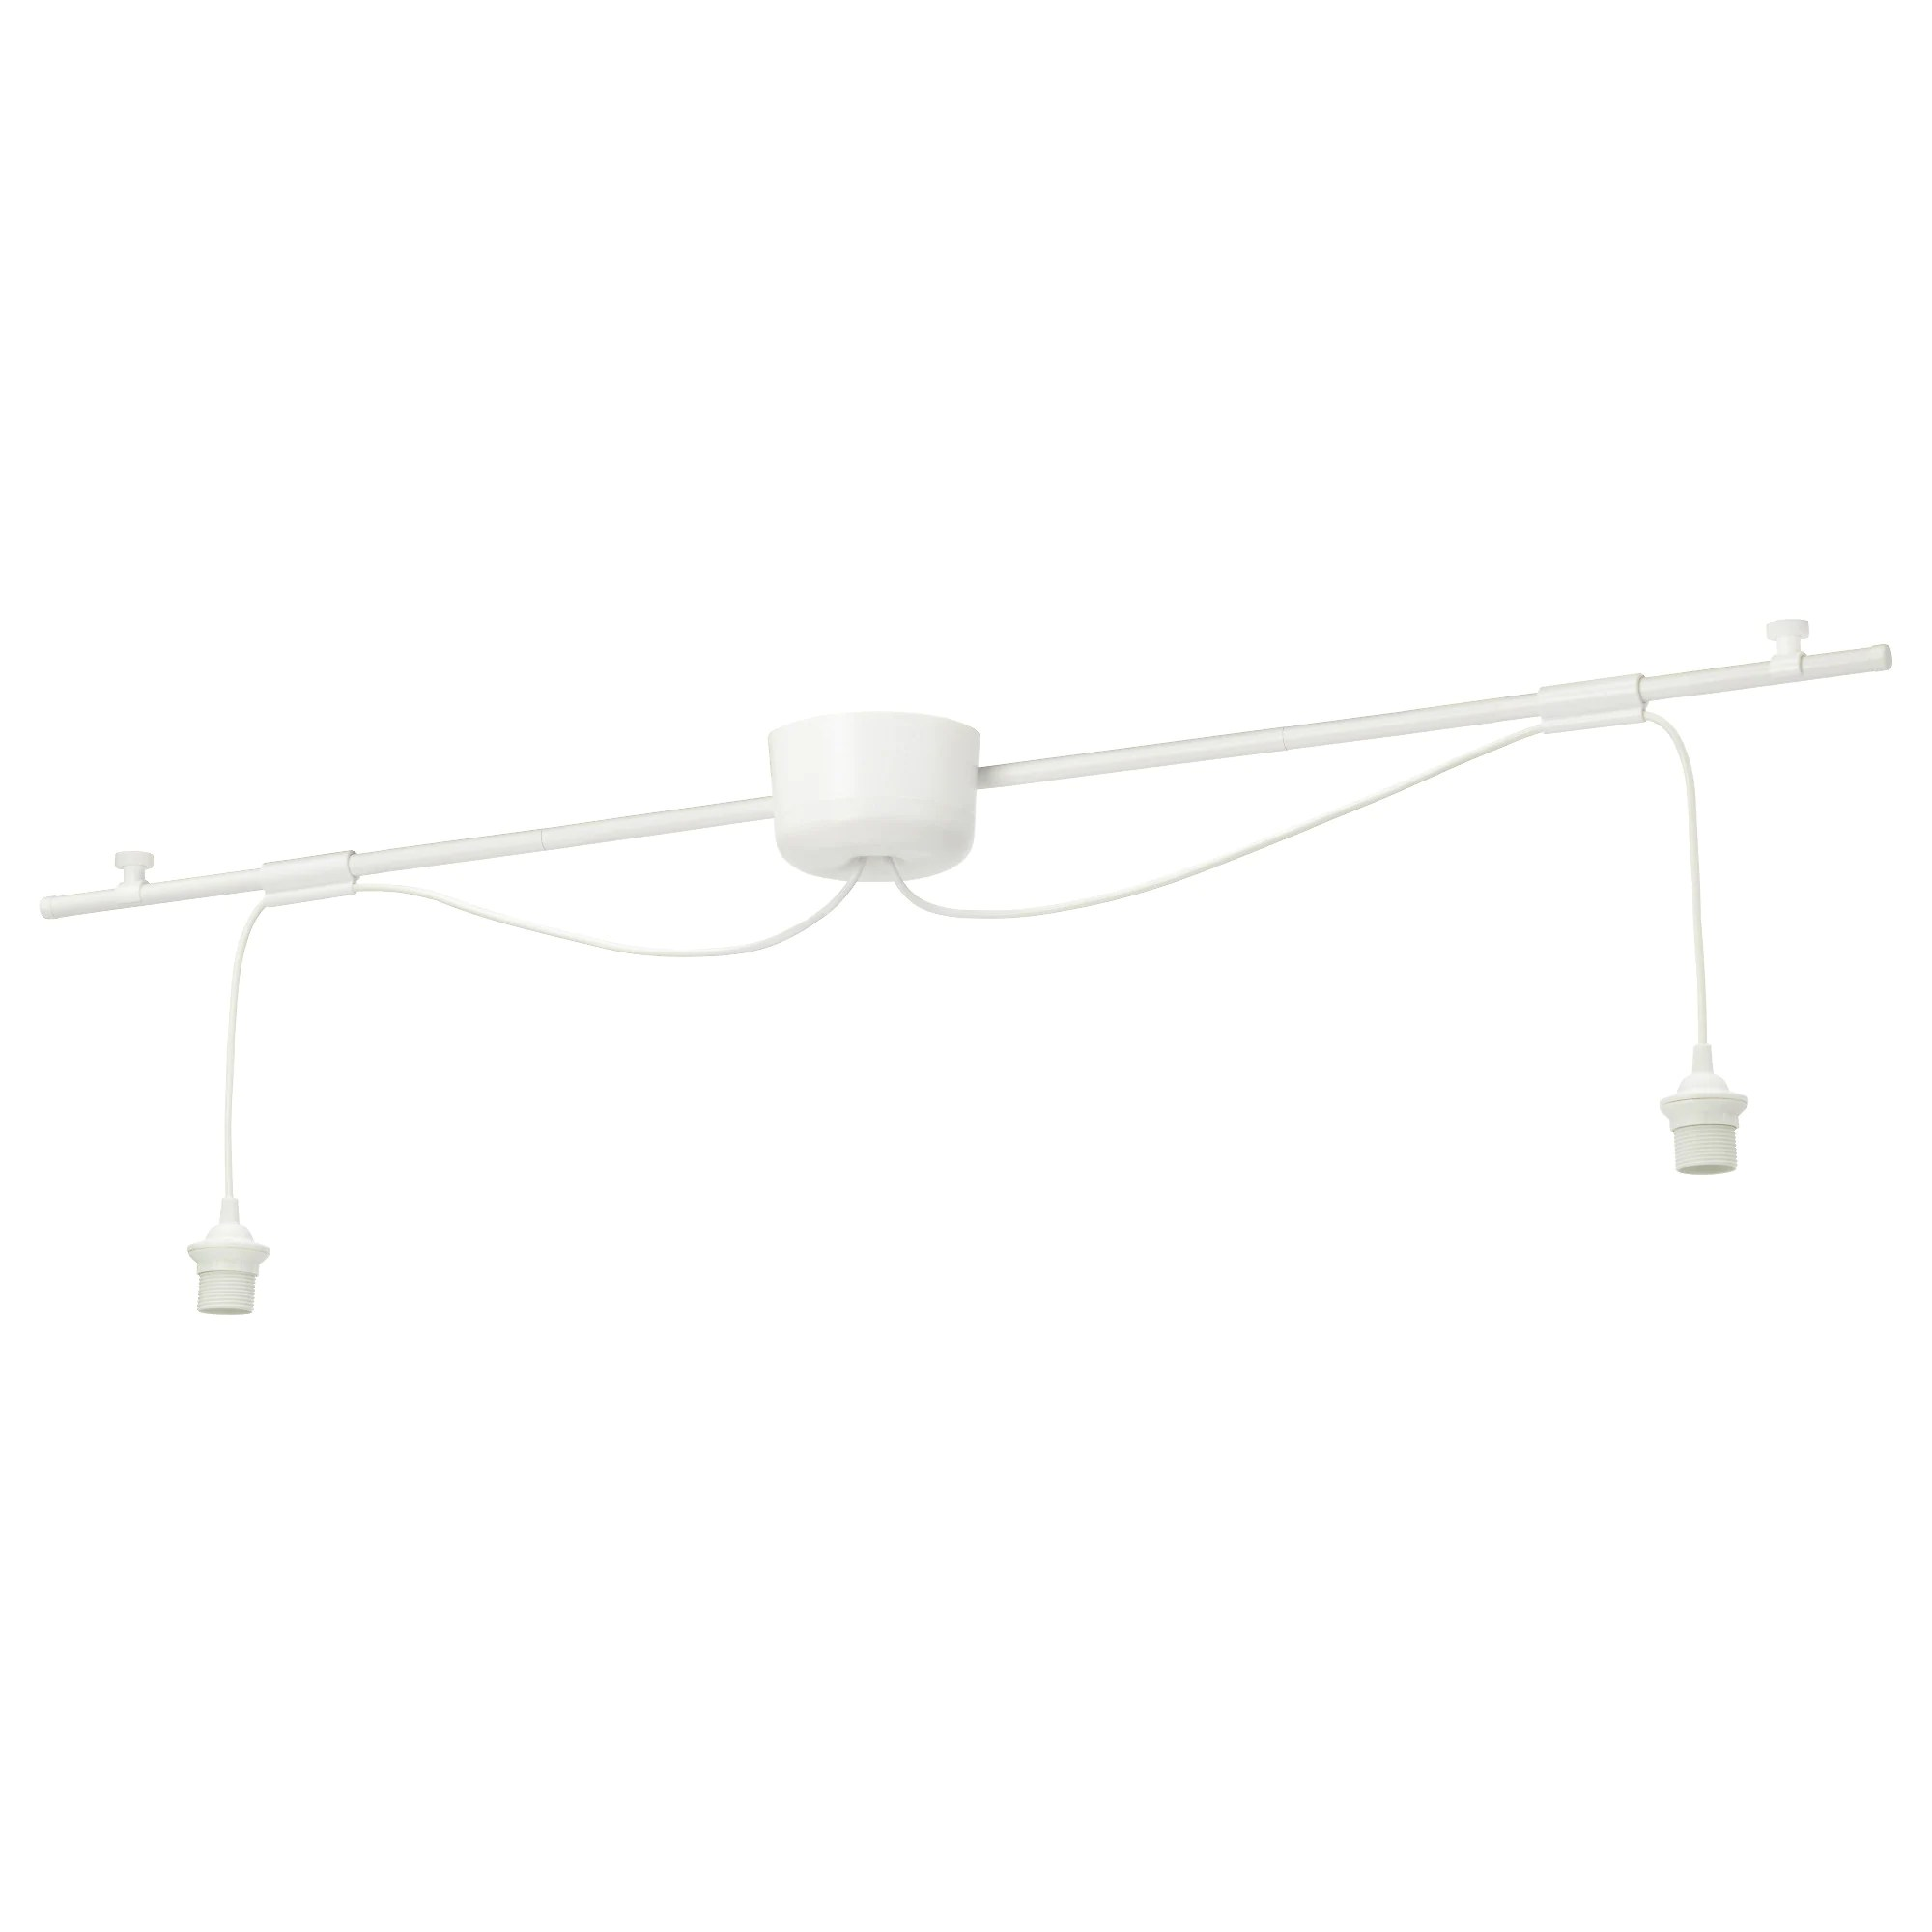 Rail Luminaire Ikea Hemma Double Cord Set With Rail White